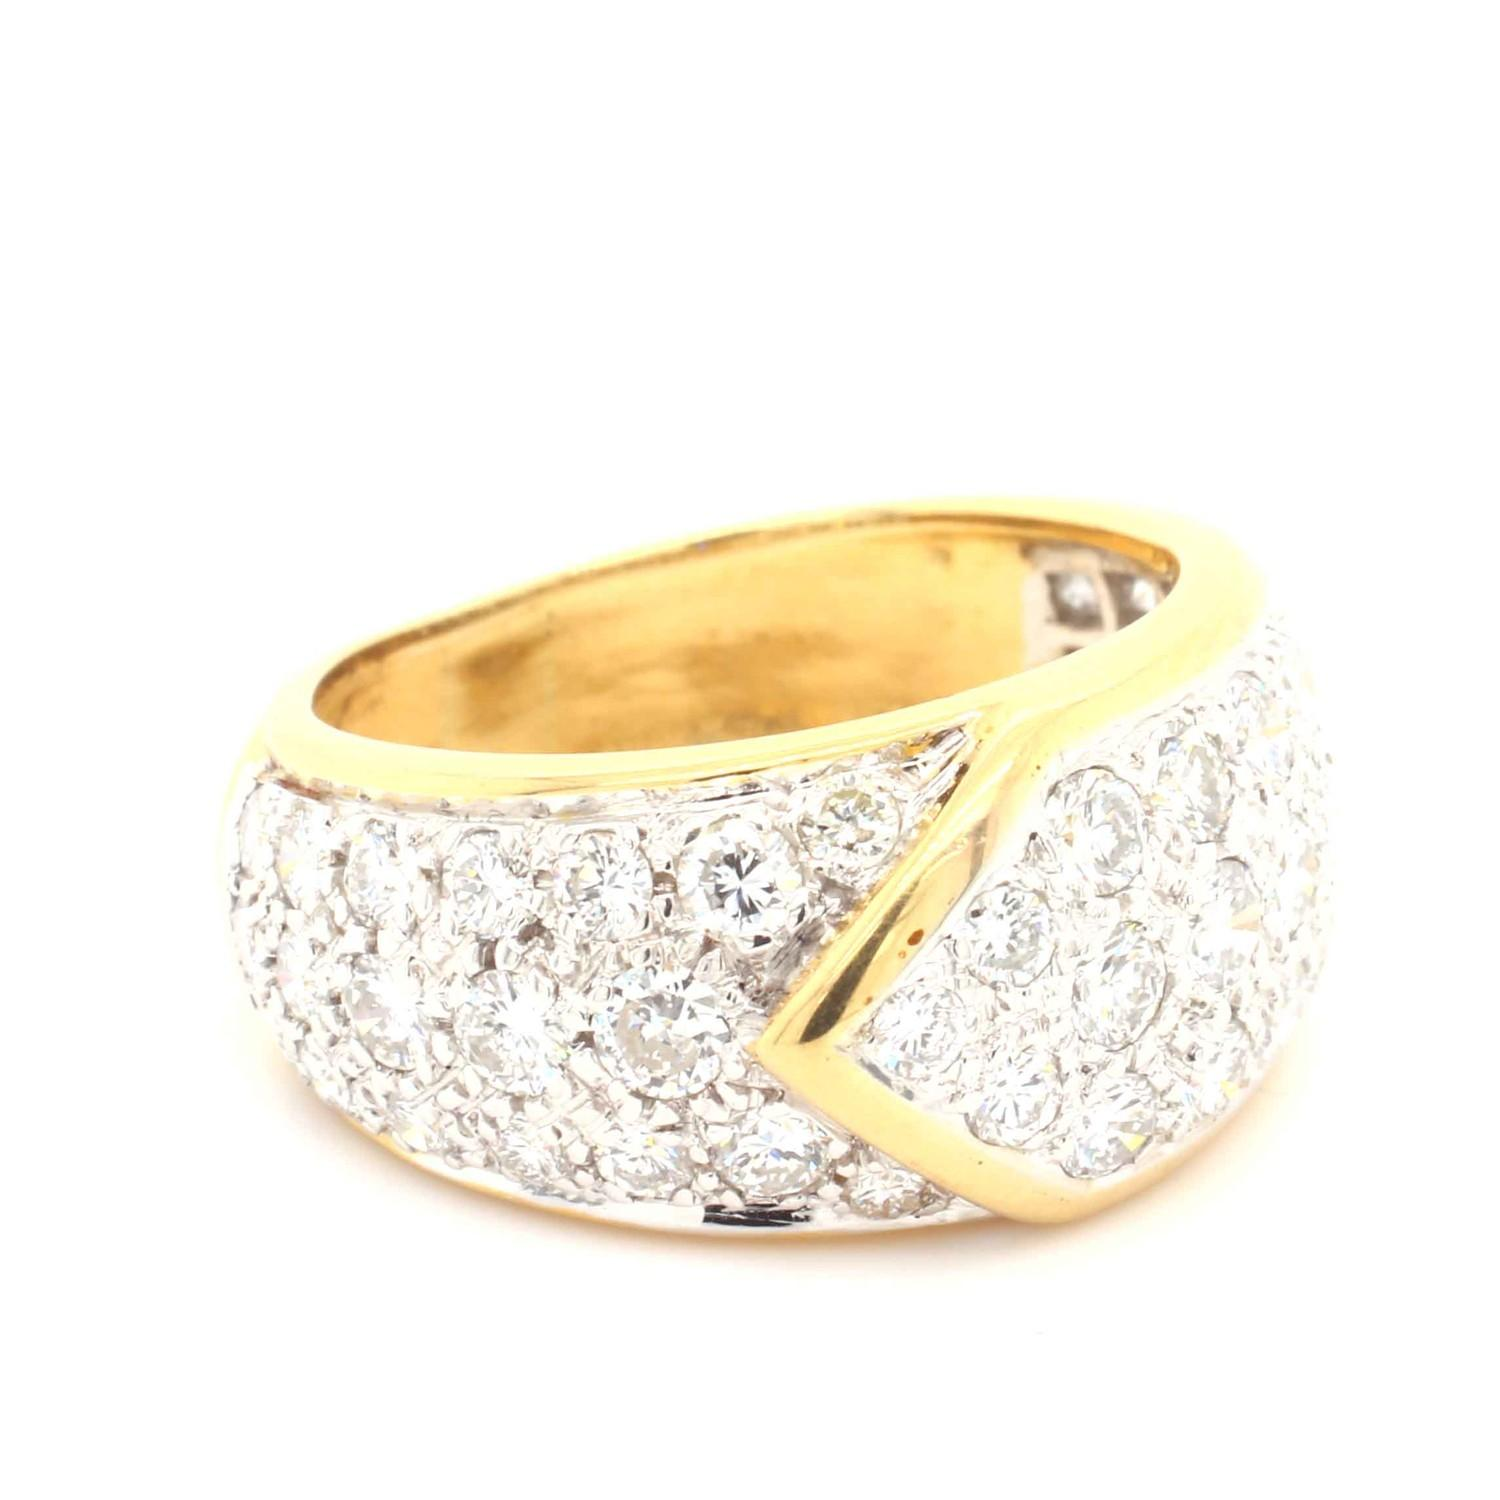 A Graff diamond Ribbon Ring, Contemporary pave set diamond buckle ring mounted in 18ct gold and